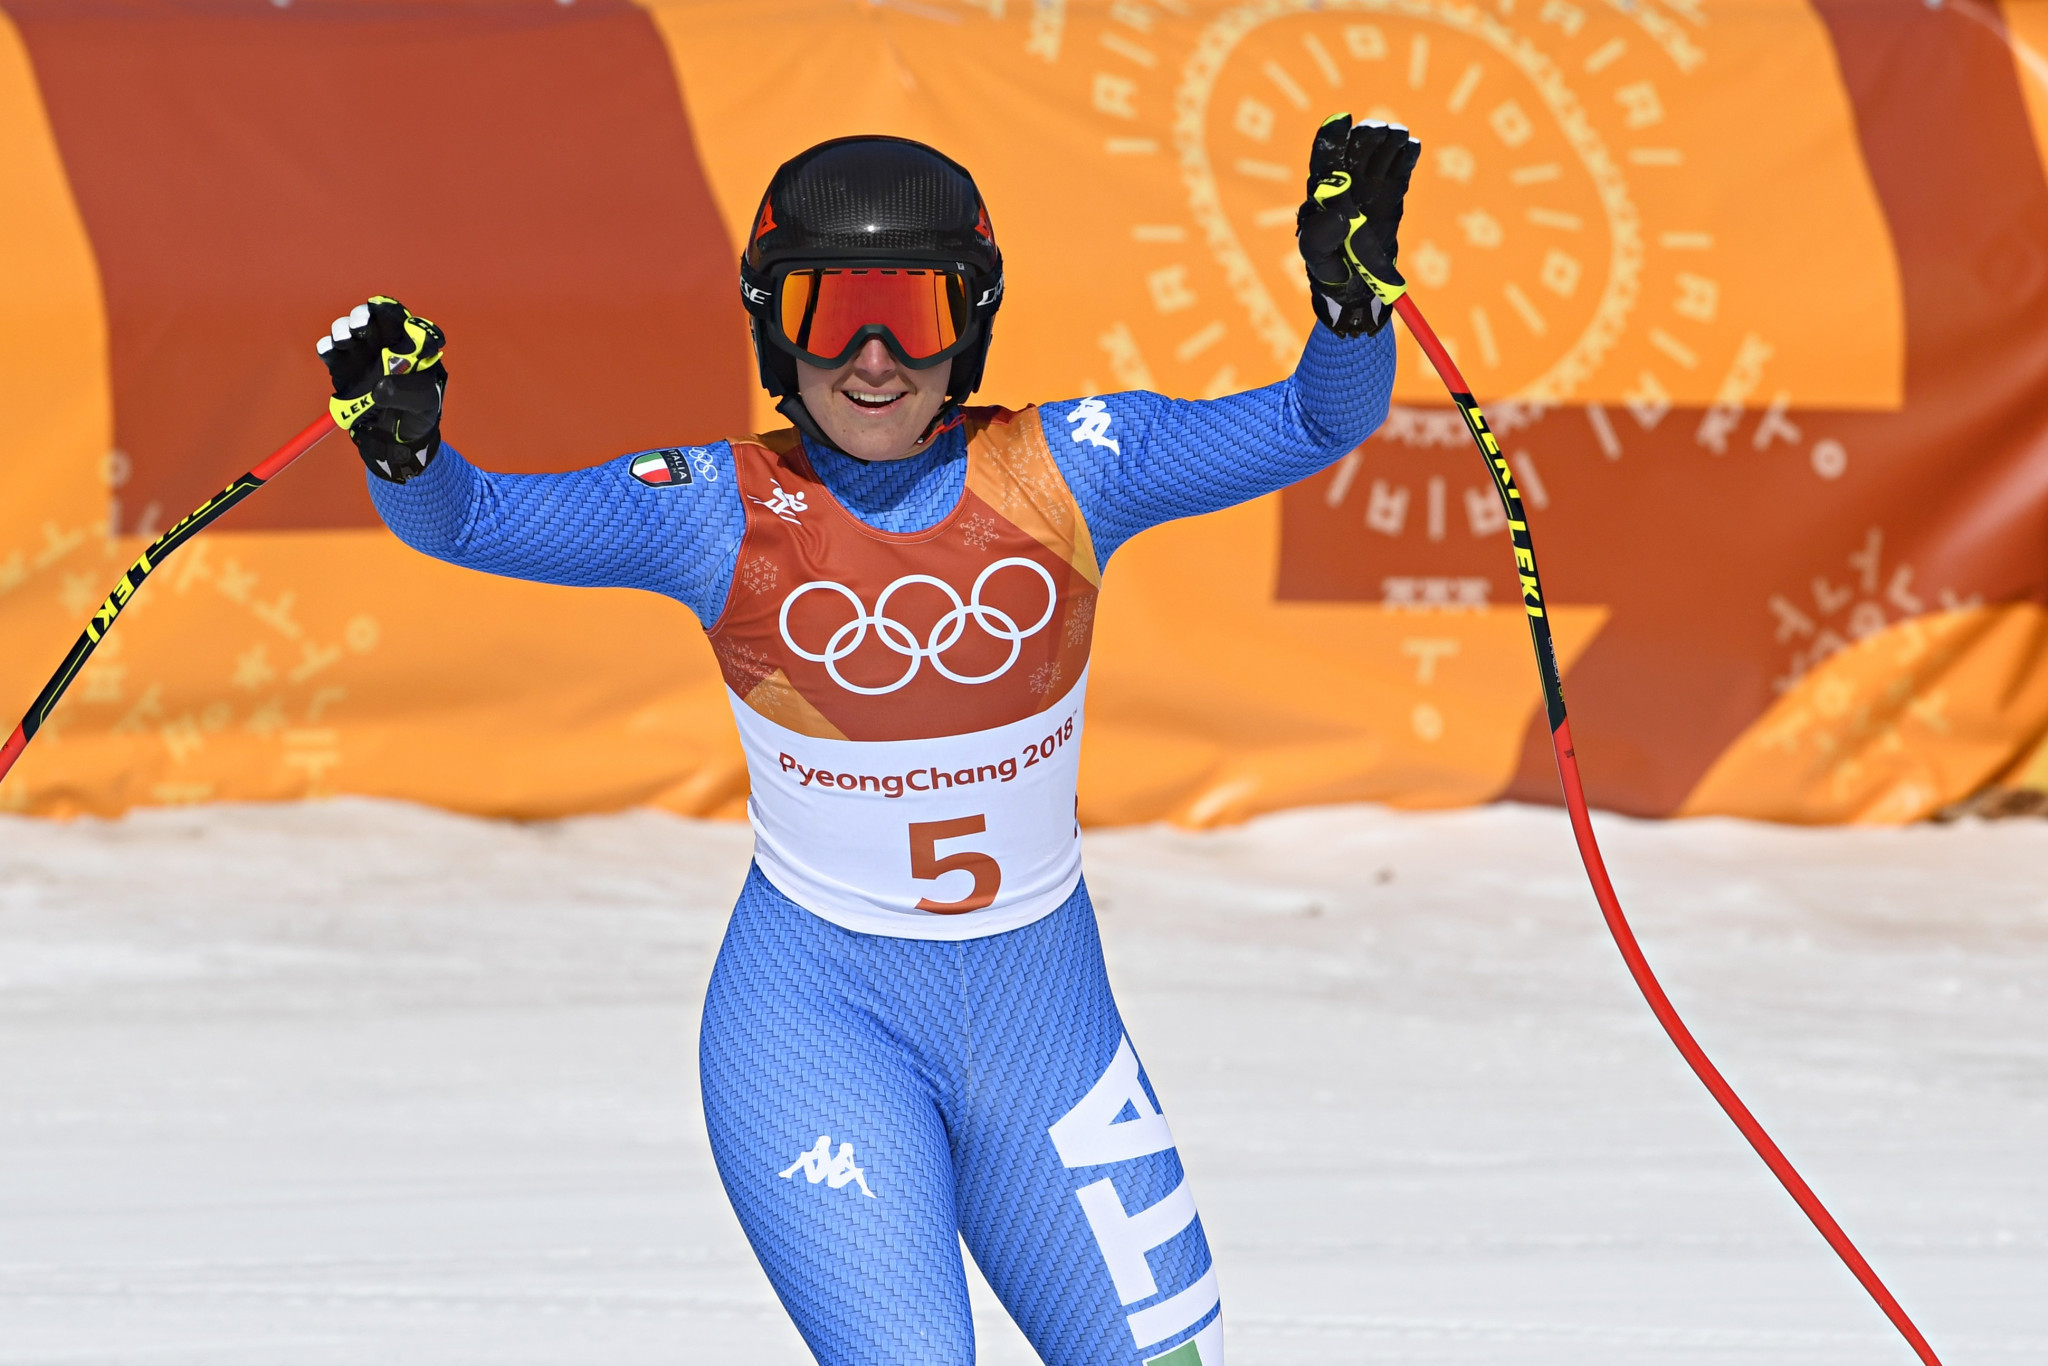 Sofia Goggia became the first Italian to win the Olympic women's downhill gold medal at Pyeongchang 2018 today ©Getty Images